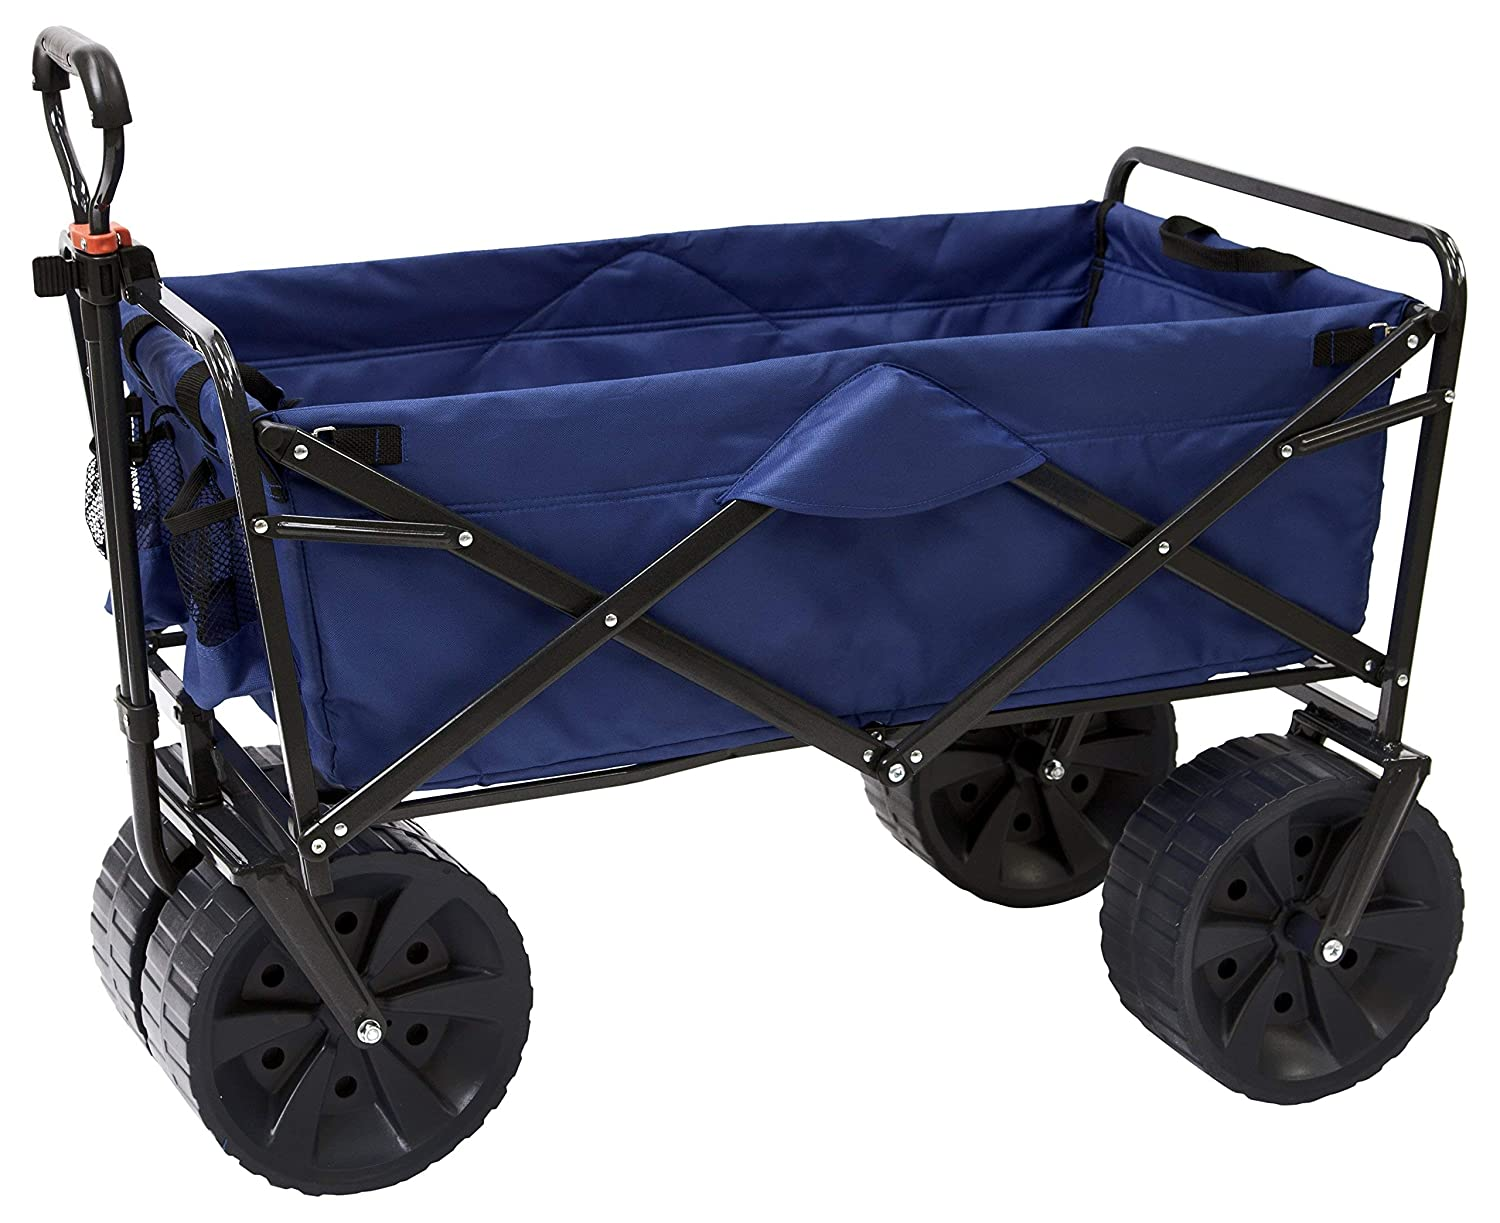 Mac Sports Heavy Duty Collapsible Folding All Terrain Utility Beach Wagon Cart, Blue Black Renewed